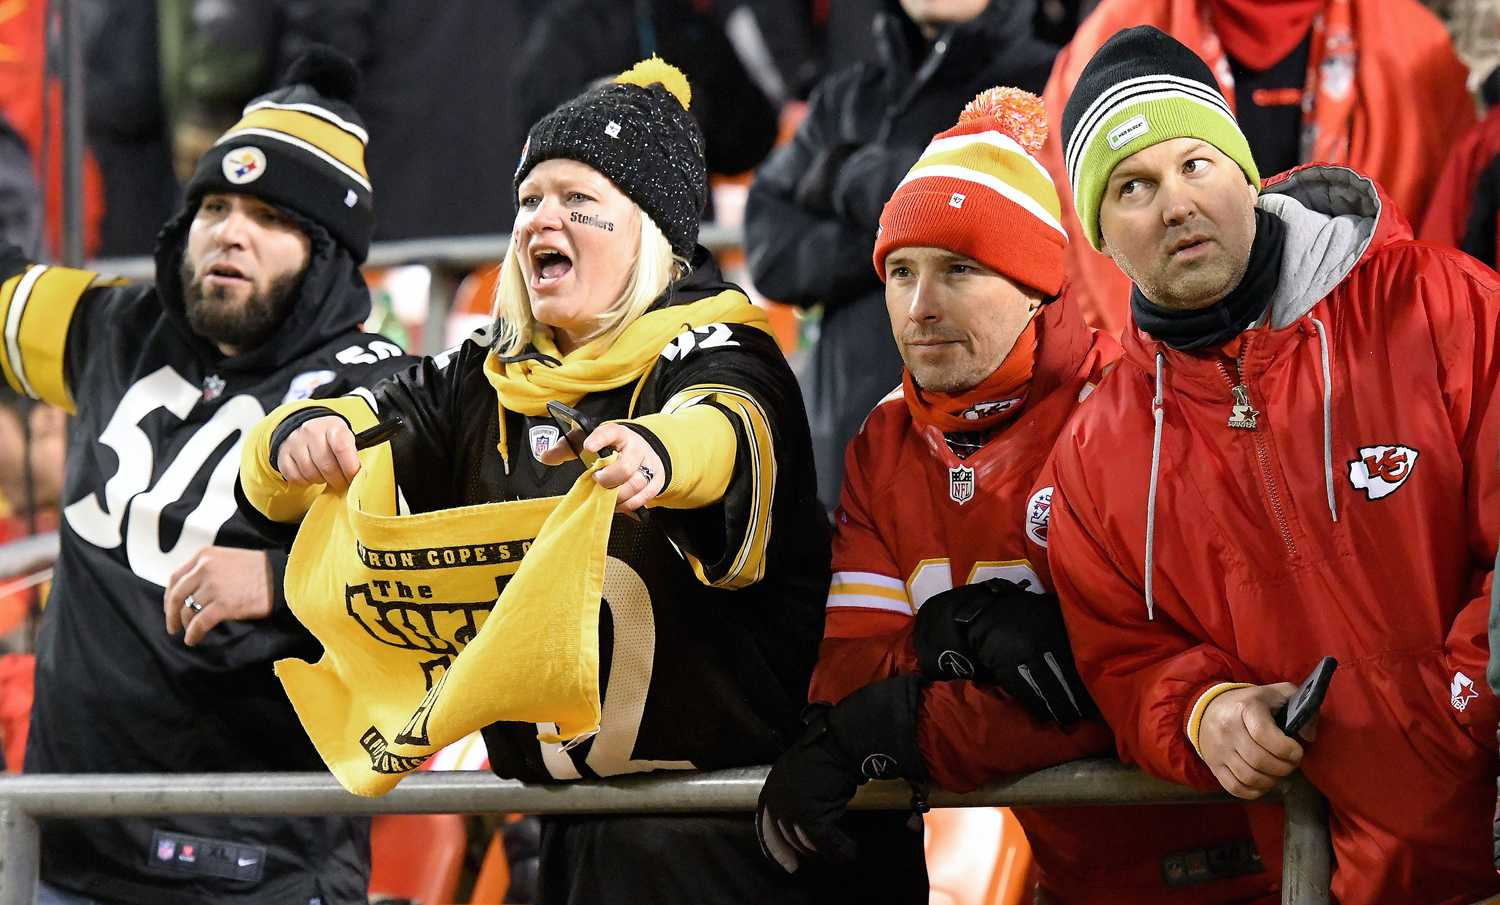 Pittsburgh Steelers fans celebrate their team's 18-16 win over the Kansas City Chiefs during the AFC Divisional Playoff game on Jan. 15, 2017 at Arrowhead Stadium in Kansas City. (John Sleezer/Kansas City Star/TNS) (File Photo)